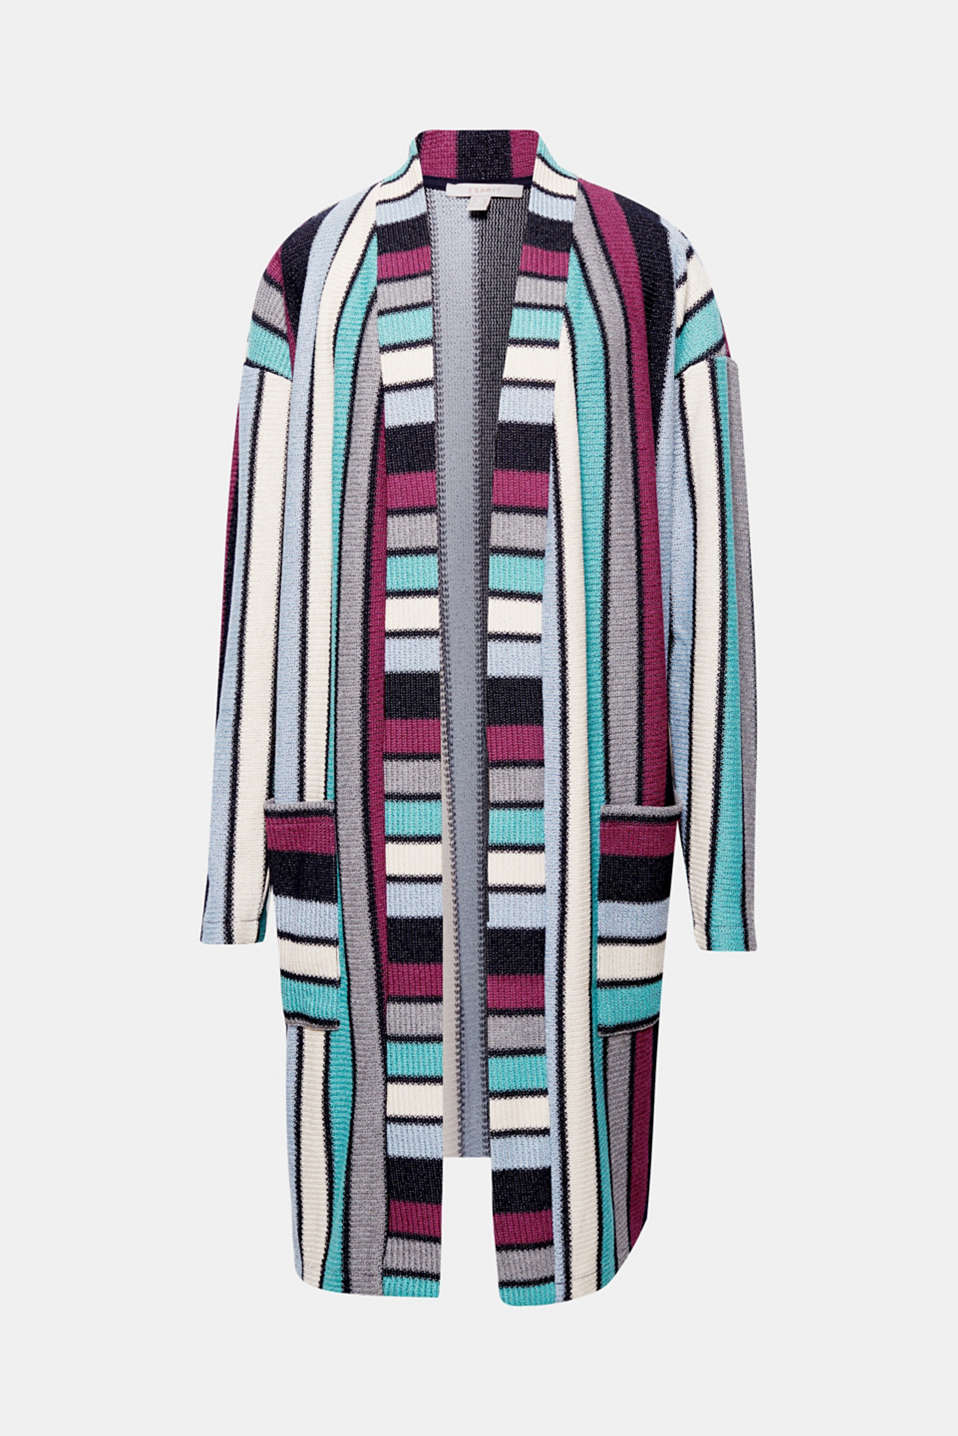 You will be making a fantastic fashion statement in this loose and graphically striped knit jacket with a long silhouette.